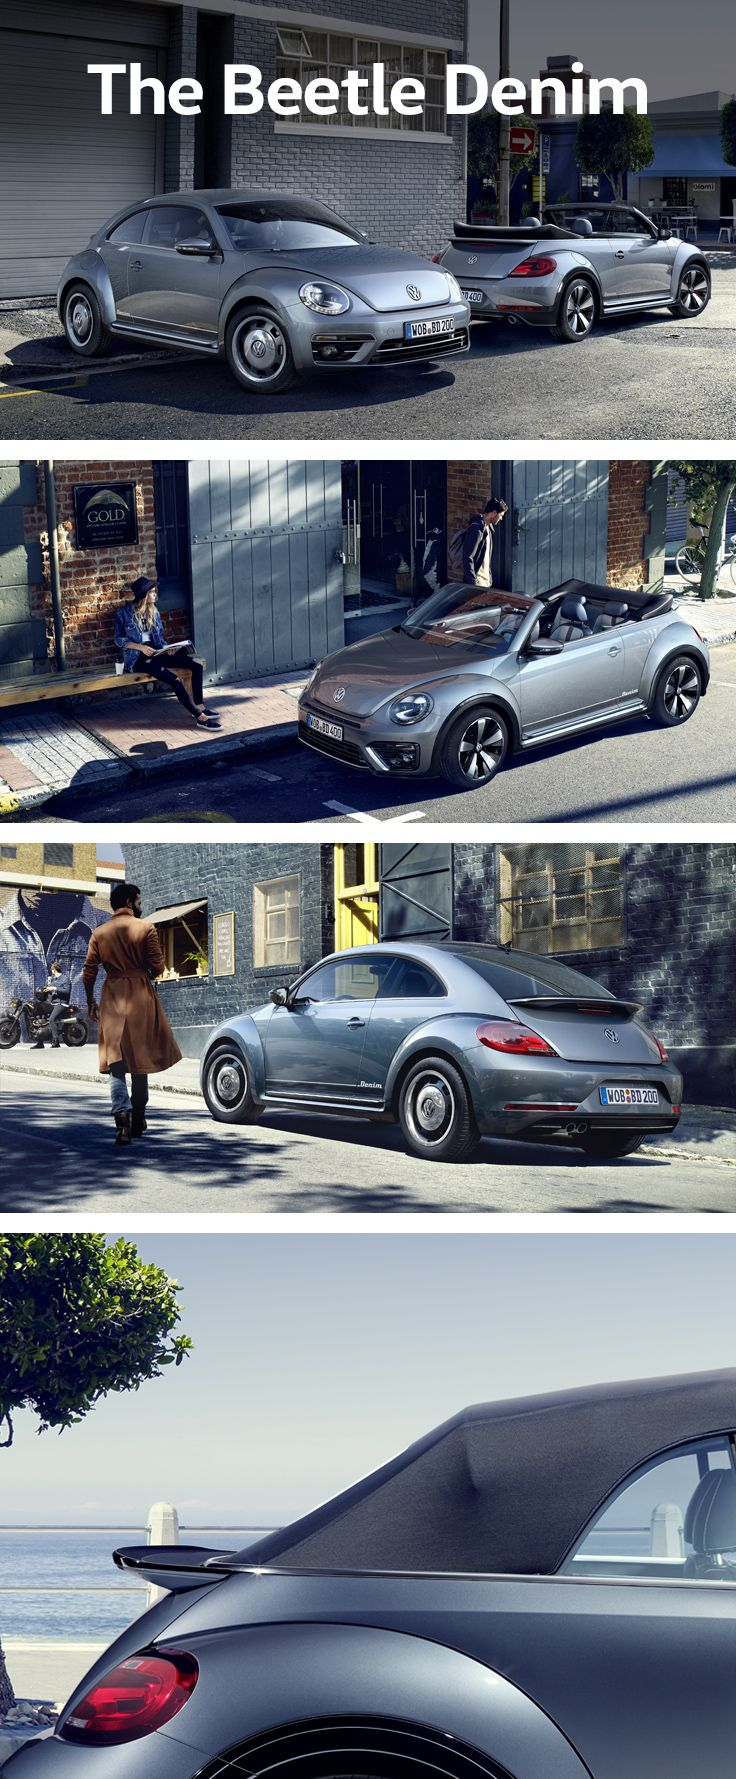 225 best Cars images on Pinterest | Autos, Cars and Dream cars